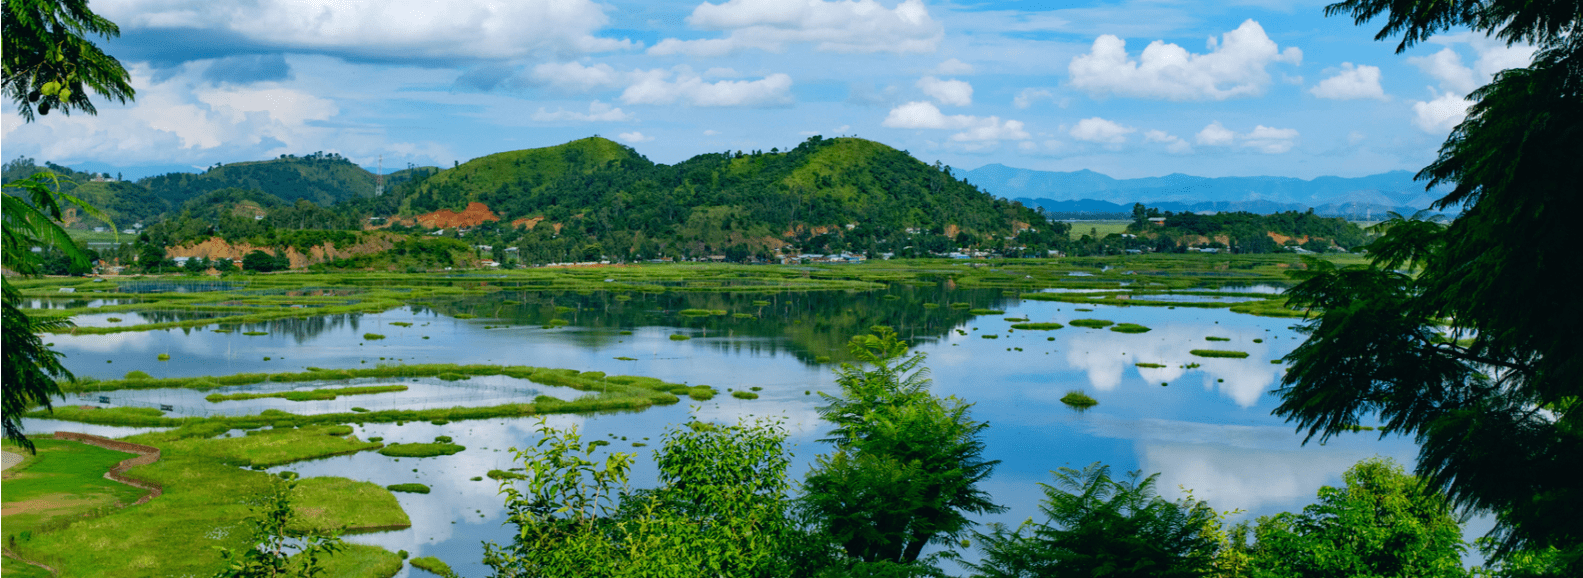 Beautiful natural lake view in Imphal city